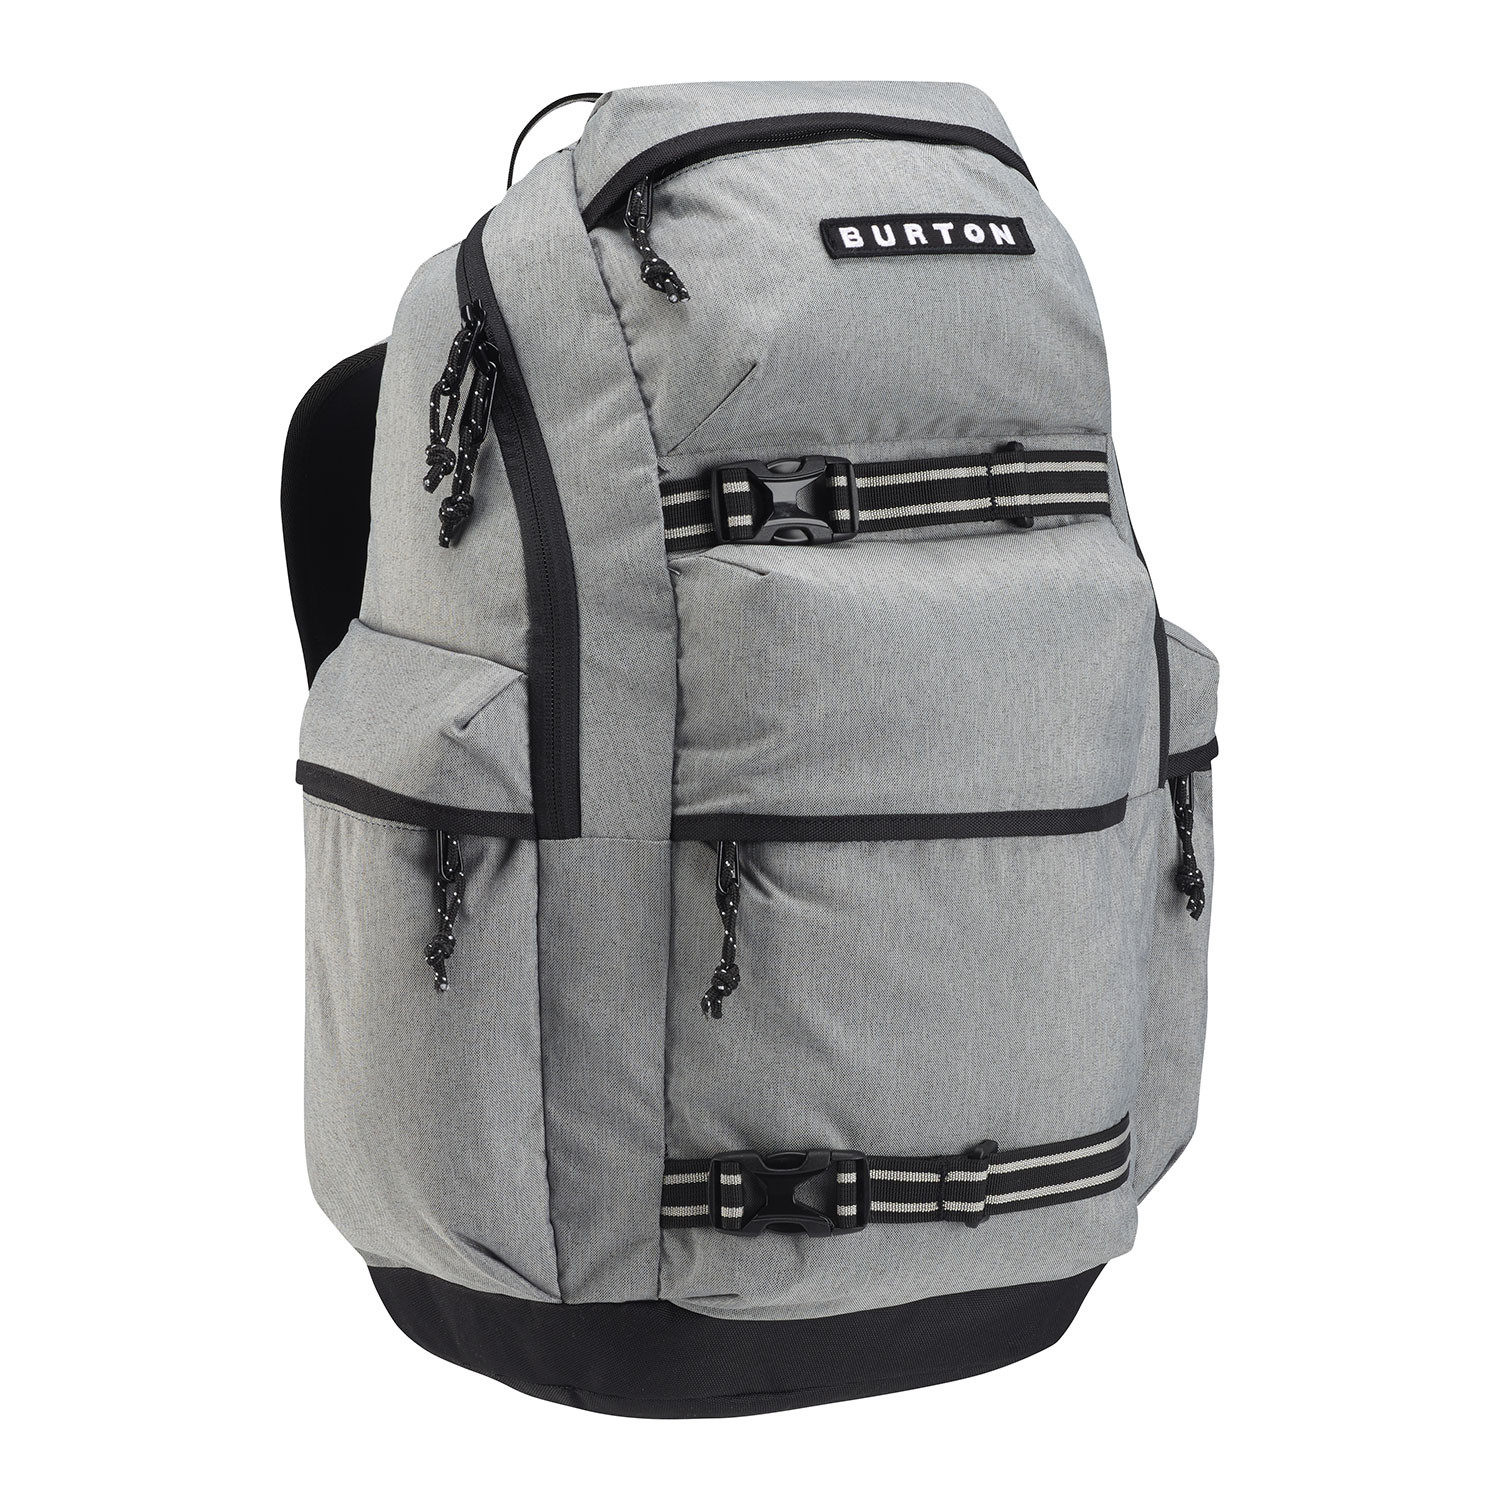 Batoh Burton Kilo grey heather